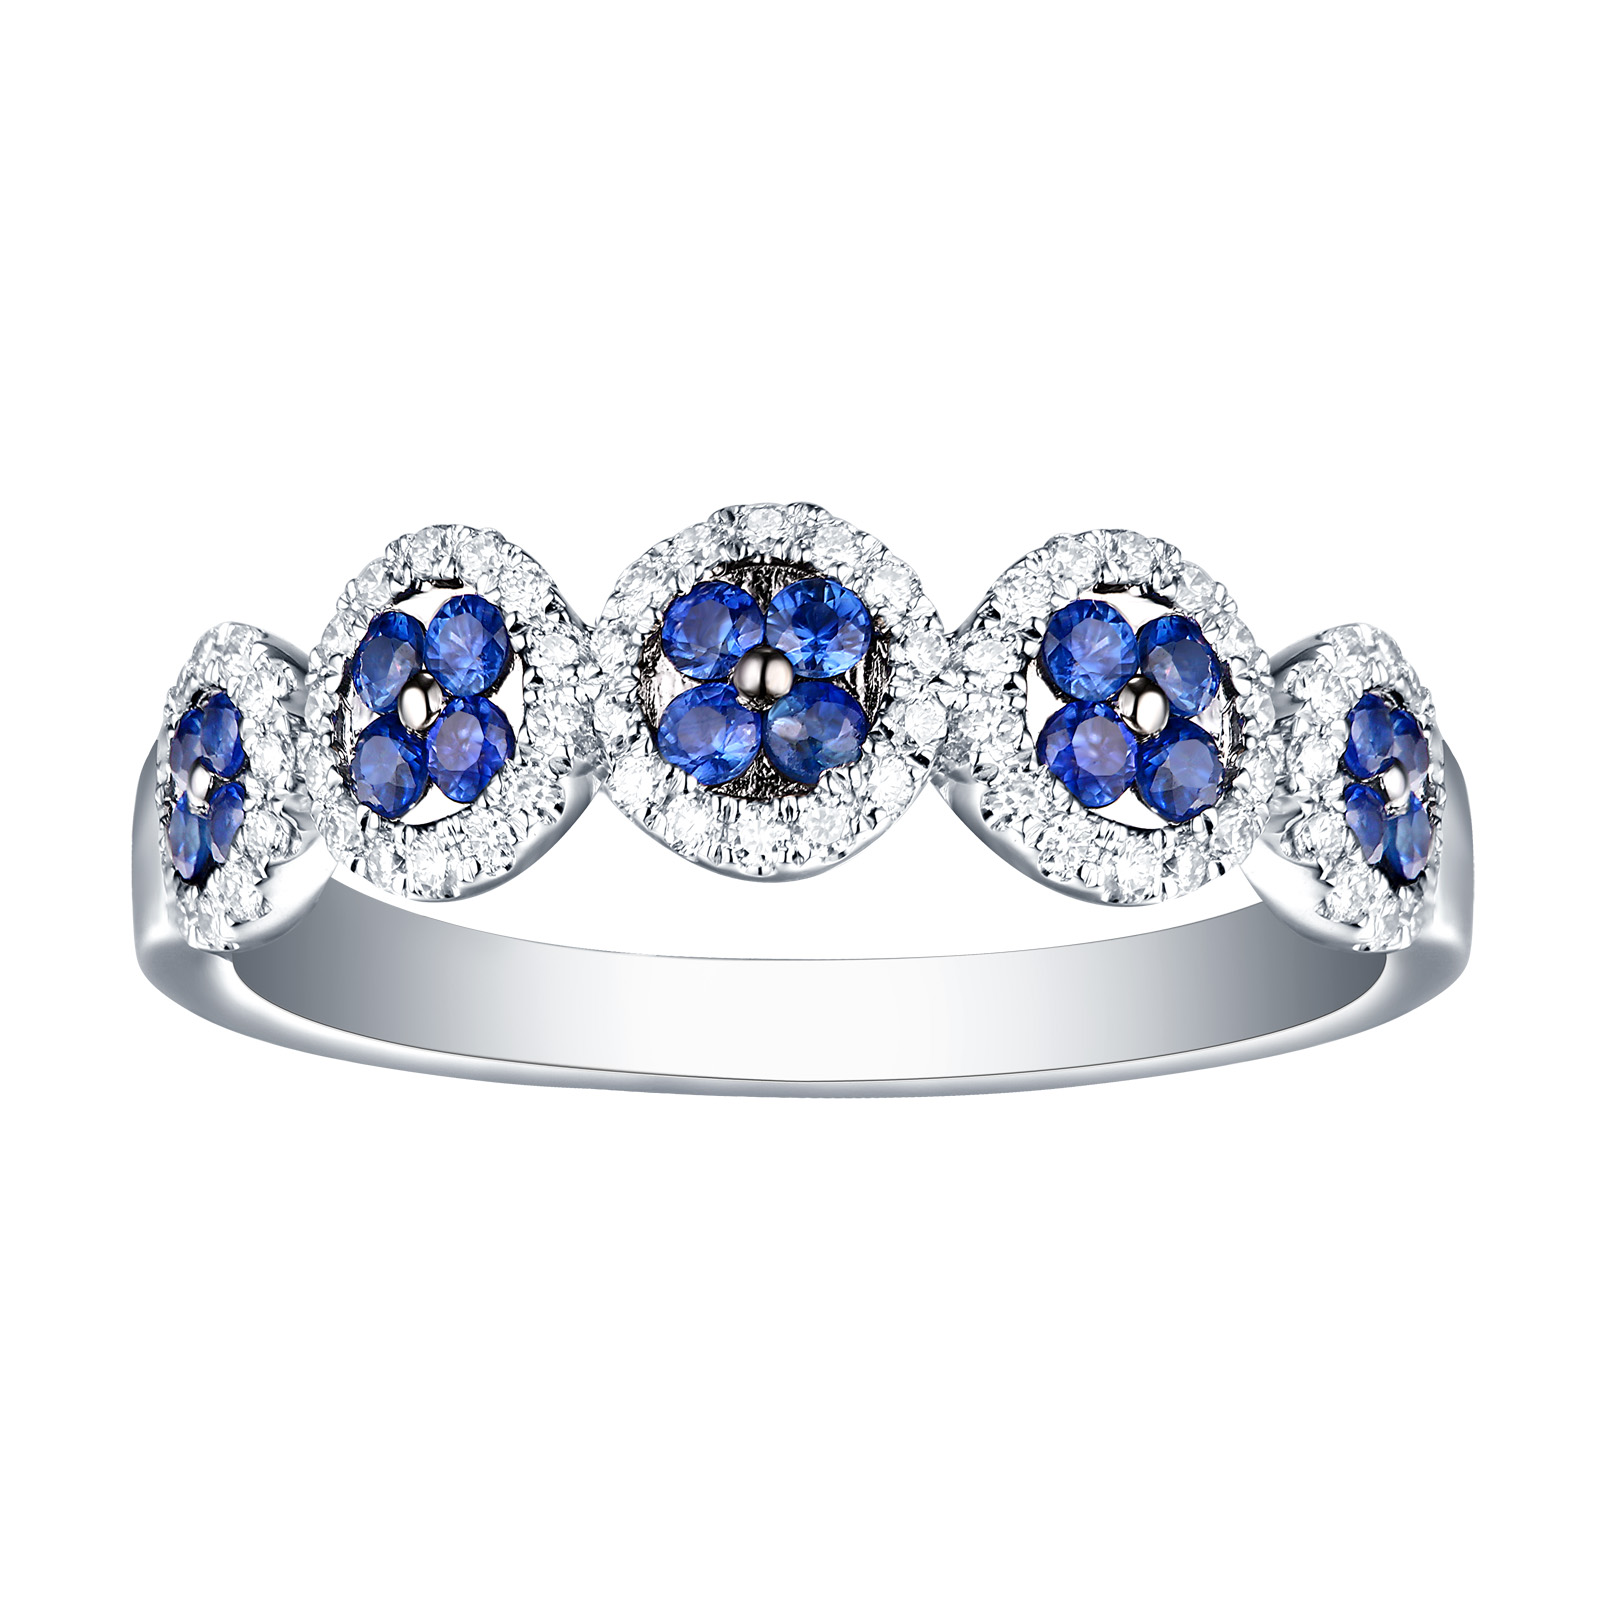 R13401BSA – 14K White Gold Blue Sapphire and Diamond Ring, 0.58 TCW